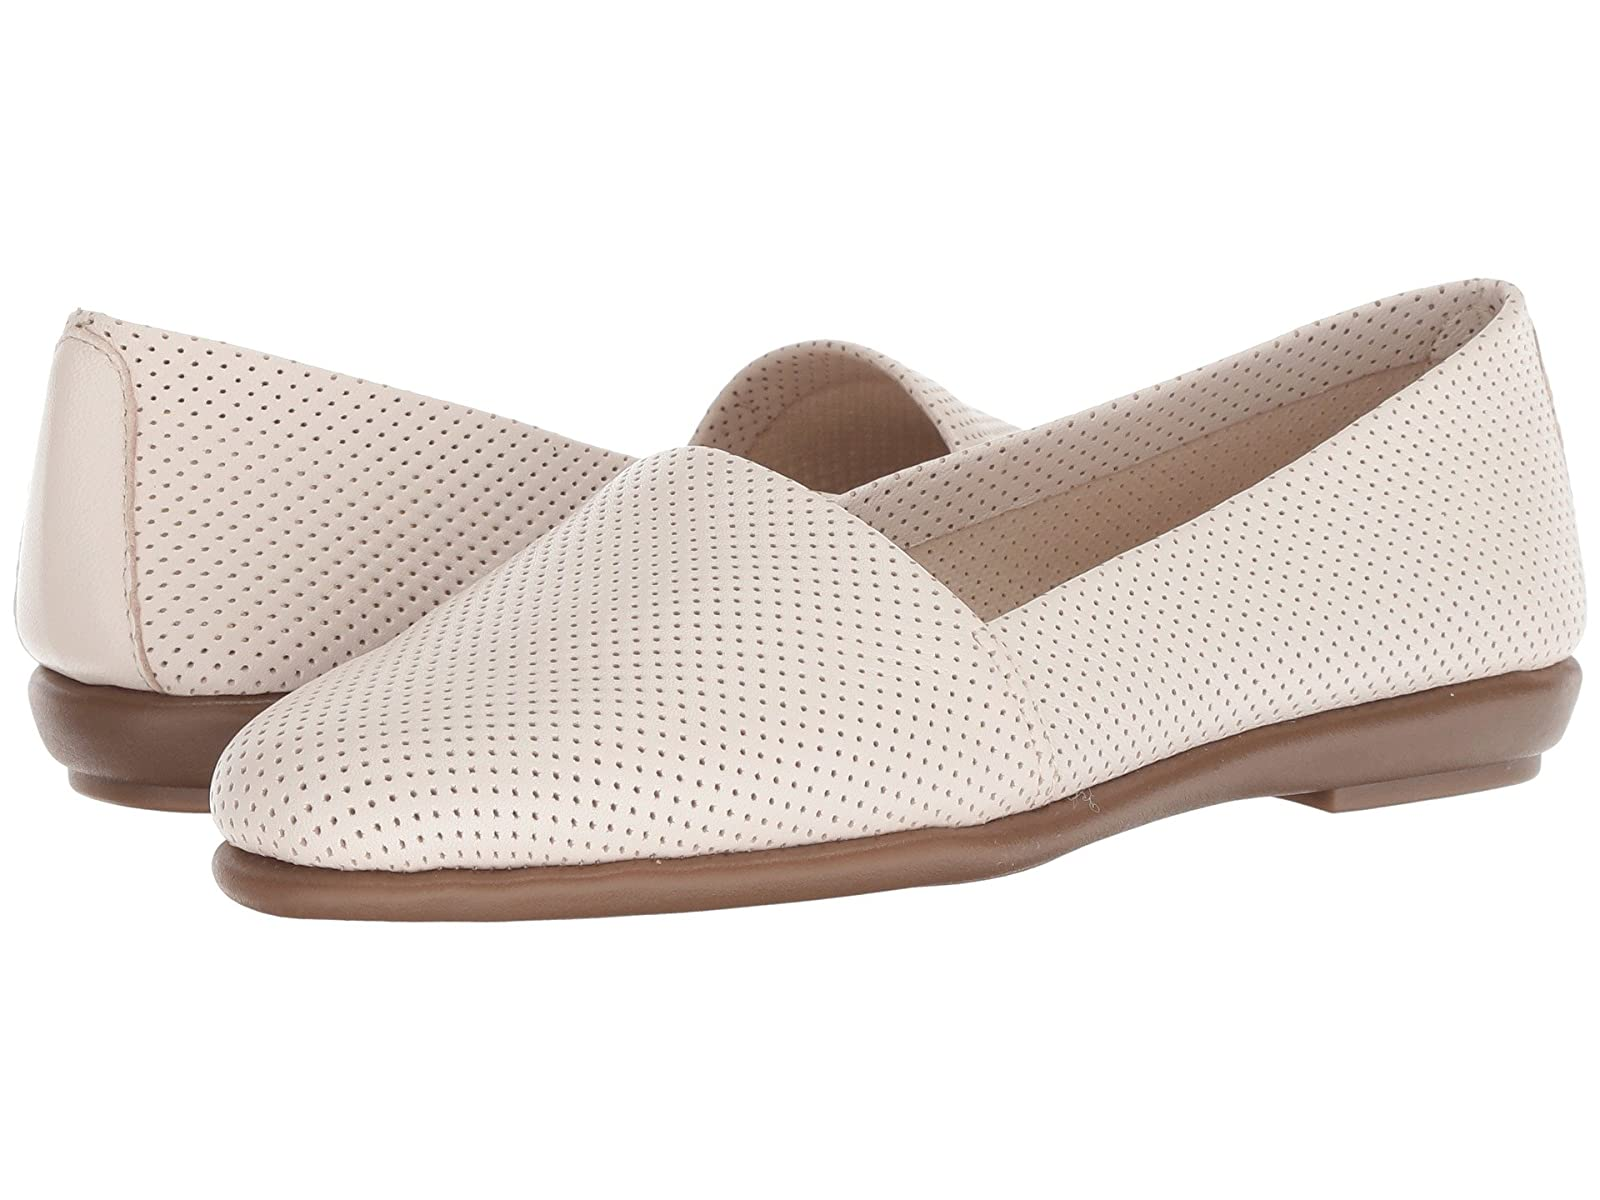 Aerosoles Ms SofteeAtmospheric grades have affordable shoes